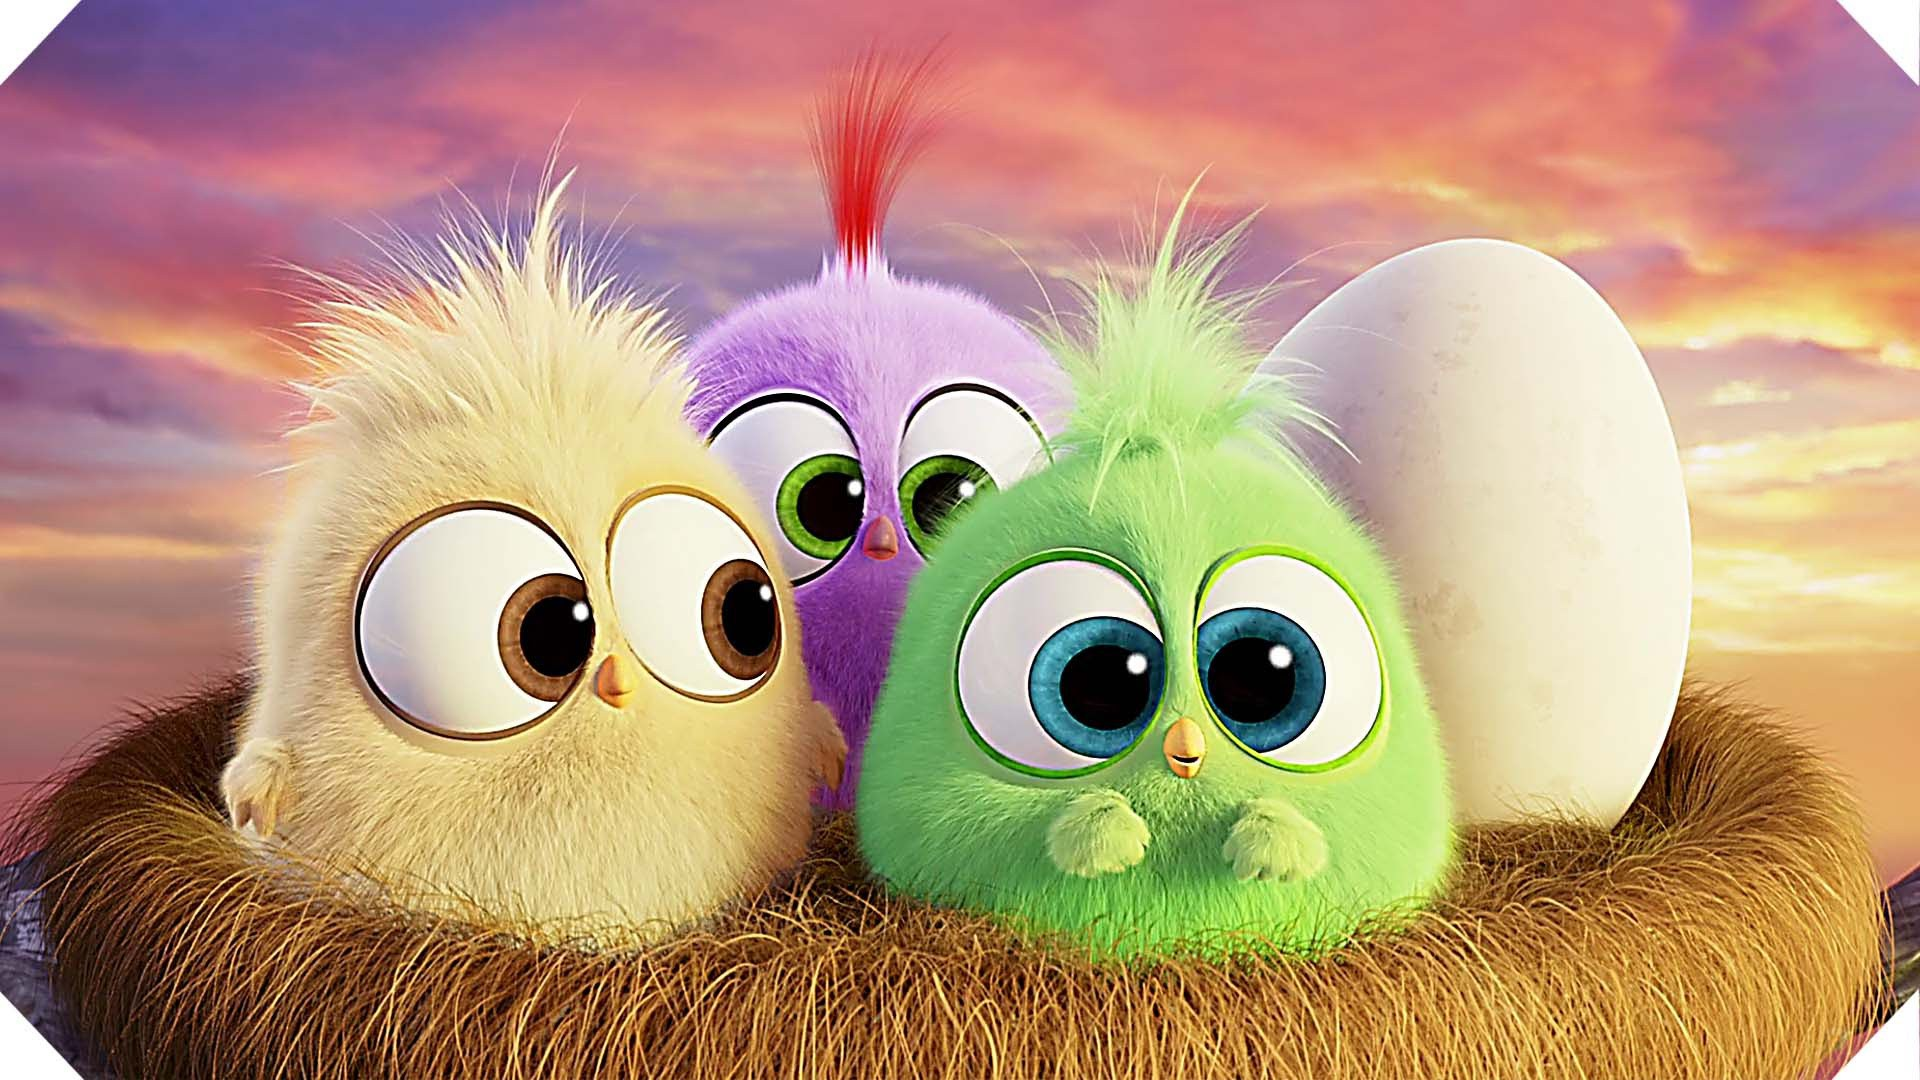 4k Angry Birds Desktop Wallpaper For Pc Angry Birds